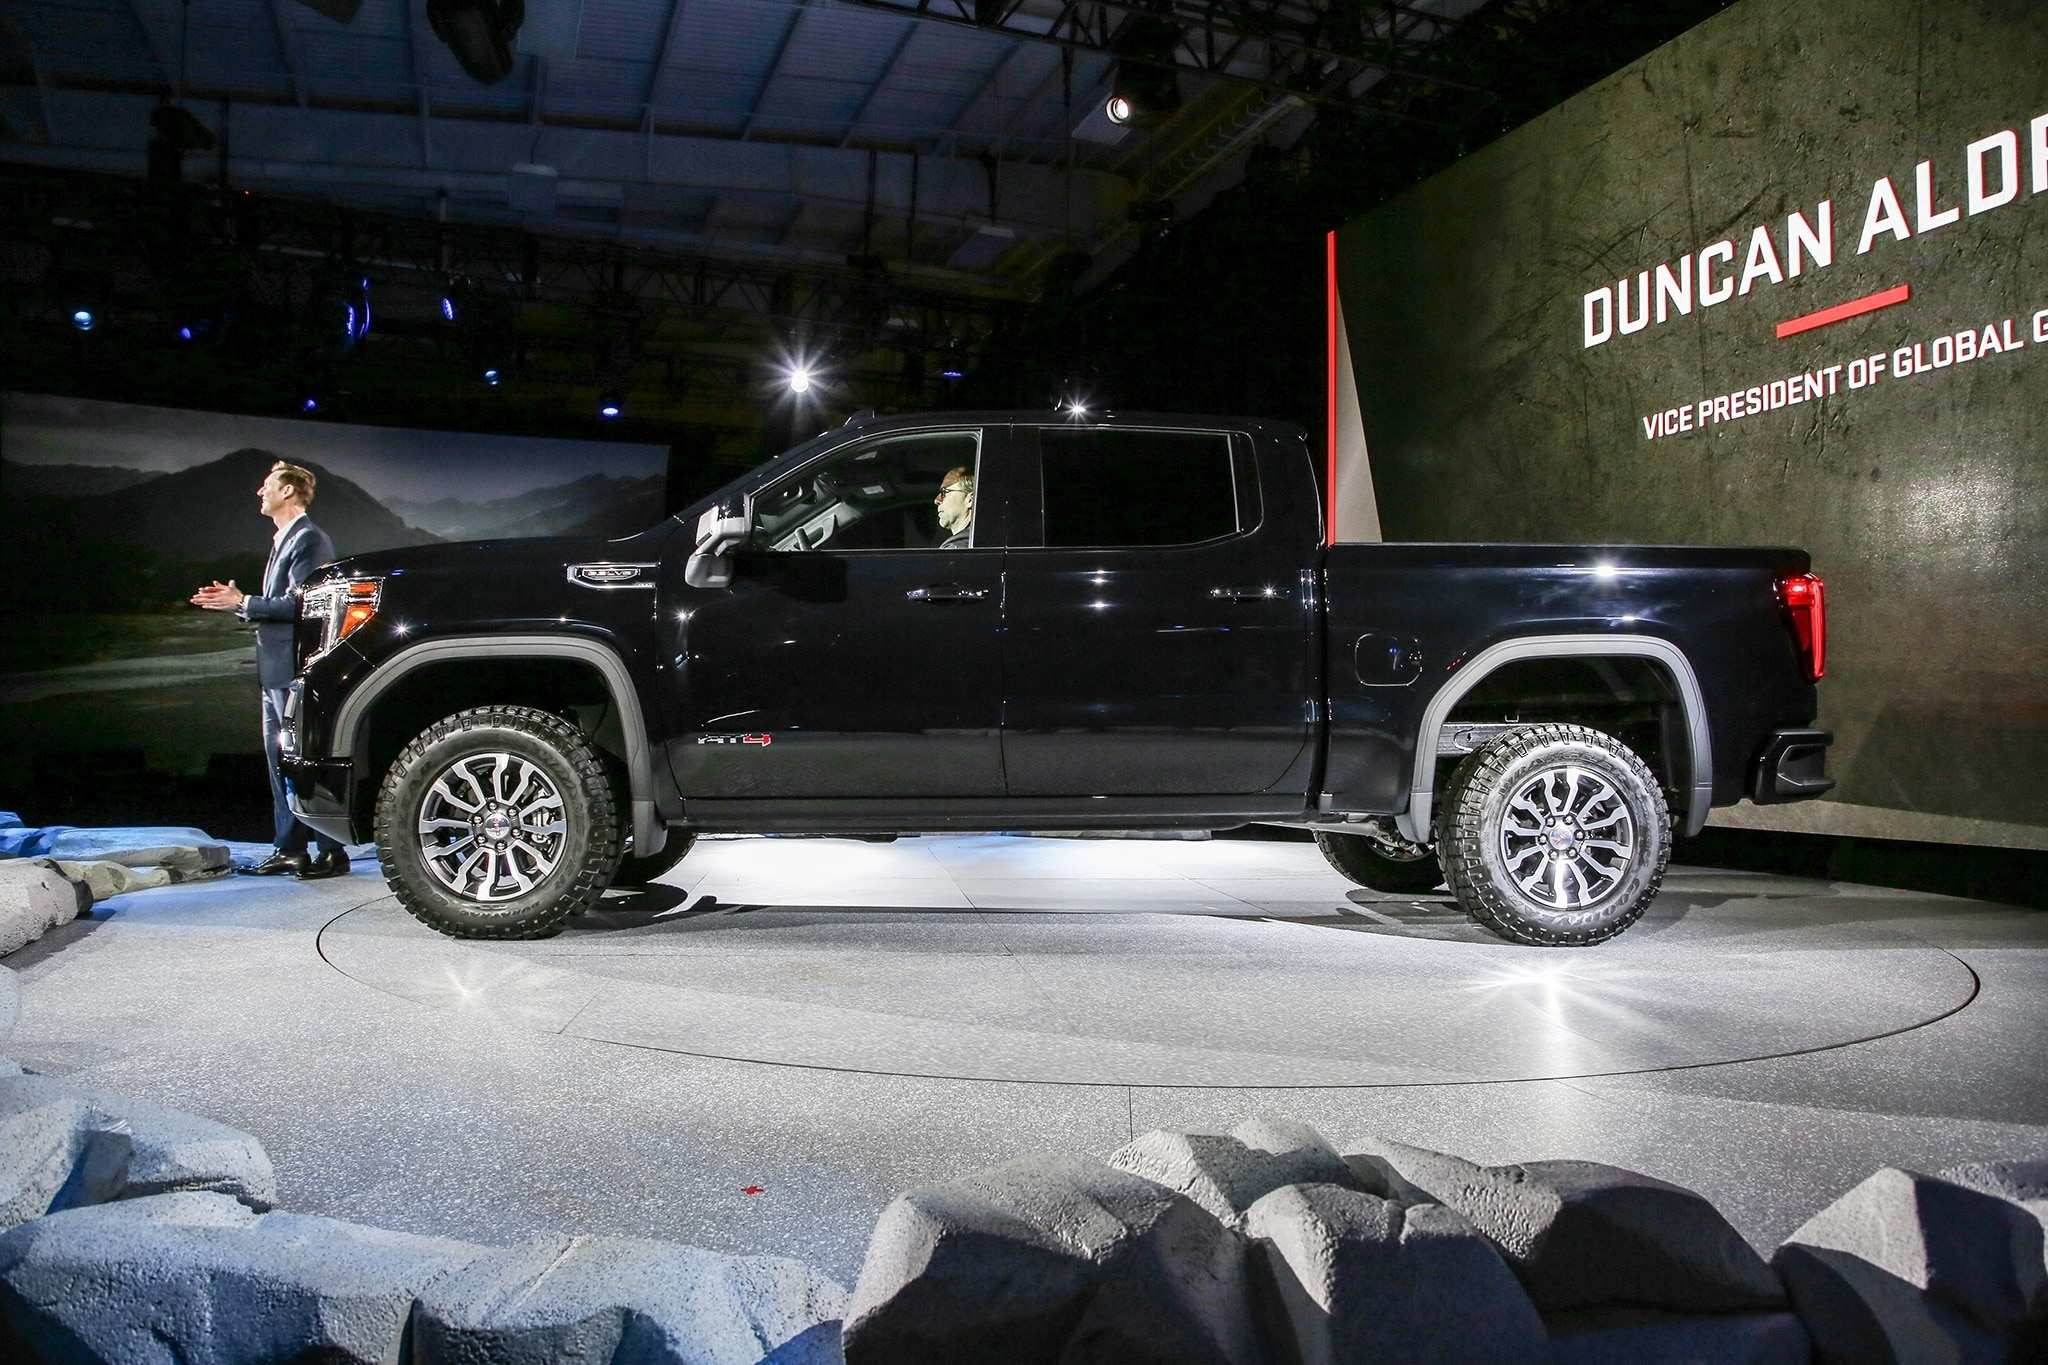 71 Concept of New 2019 Gmc Sierra At4 Interior Exterior And Review Ratings by New 2019 Gmc Sierra At4 Interior Exterior And Review